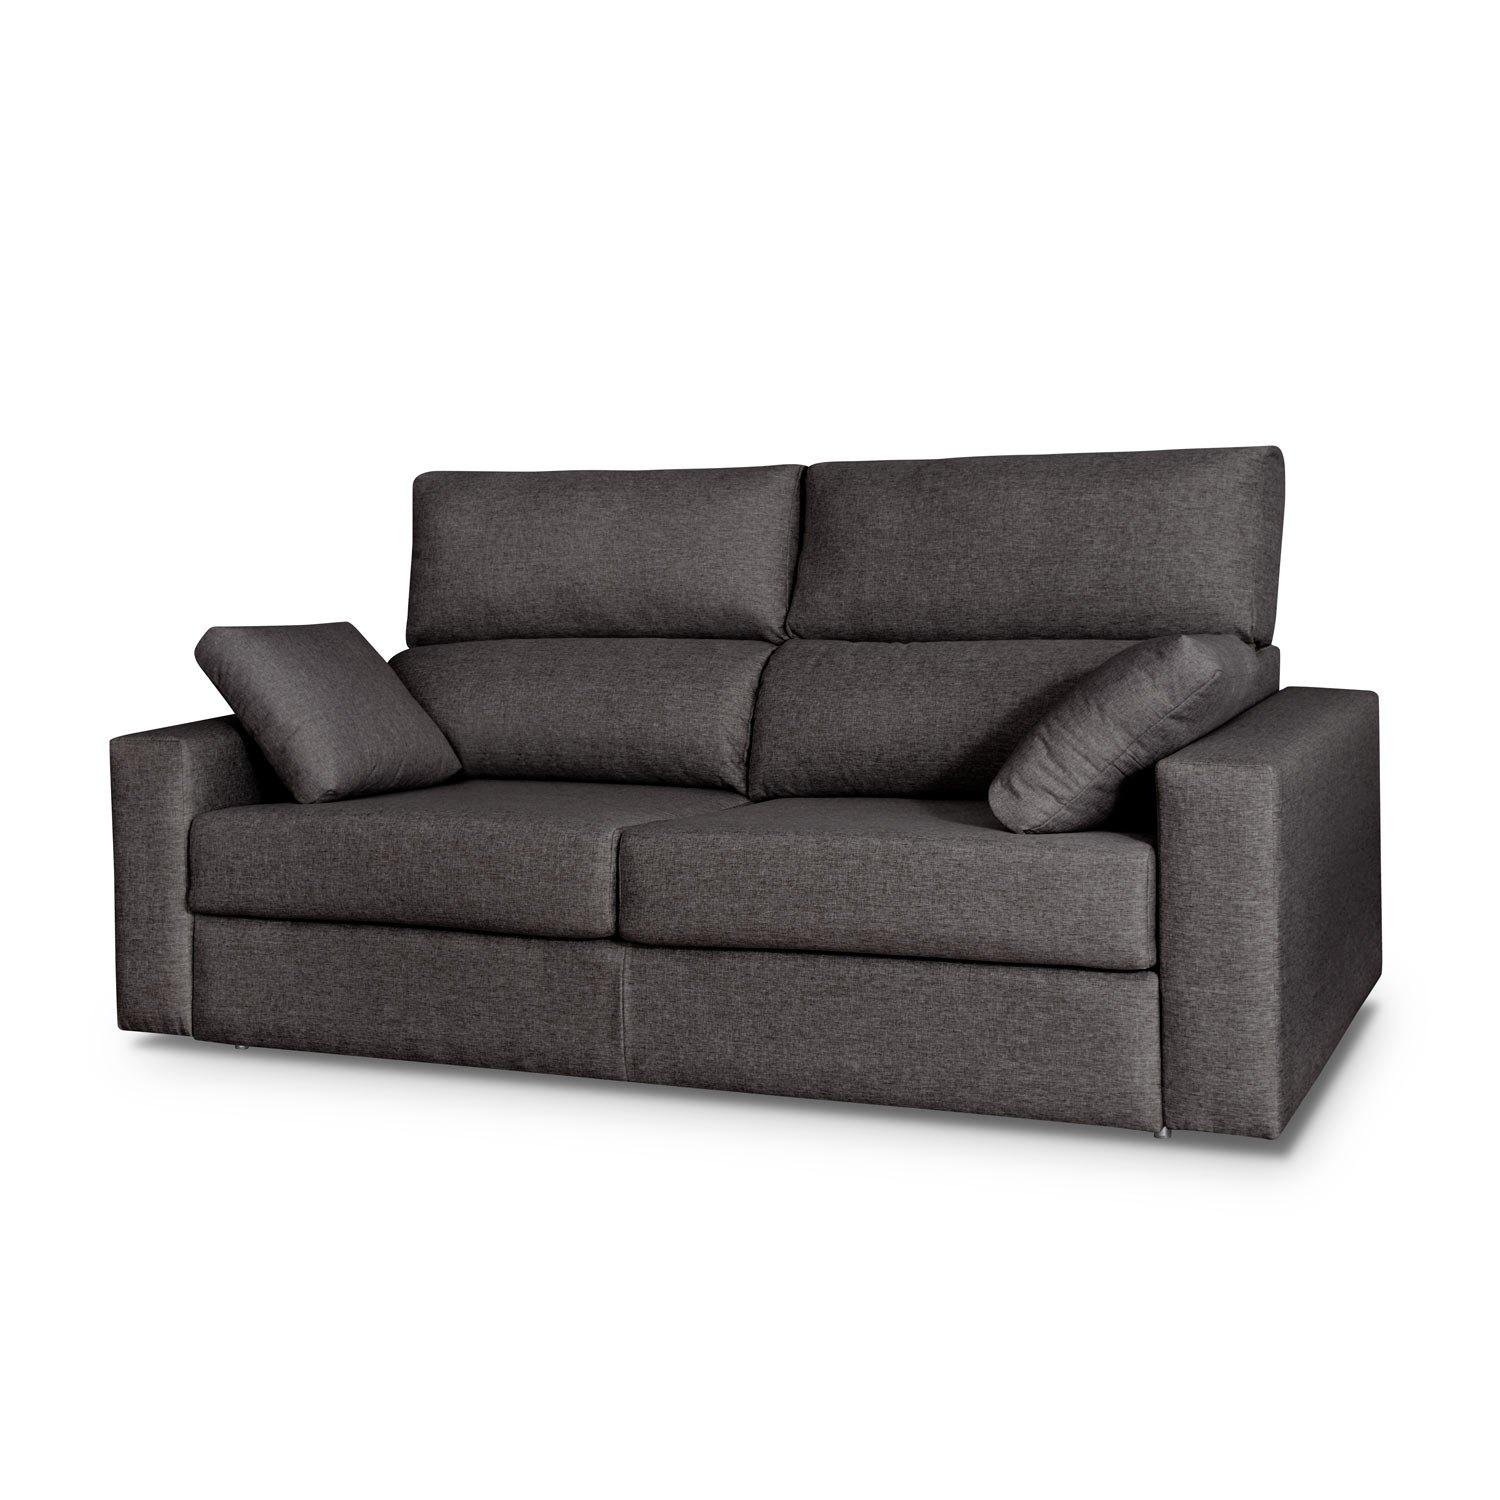 Sillones Dos Plazas Baratos Sofa Cama 2 Plazas Barato Review Home Decor